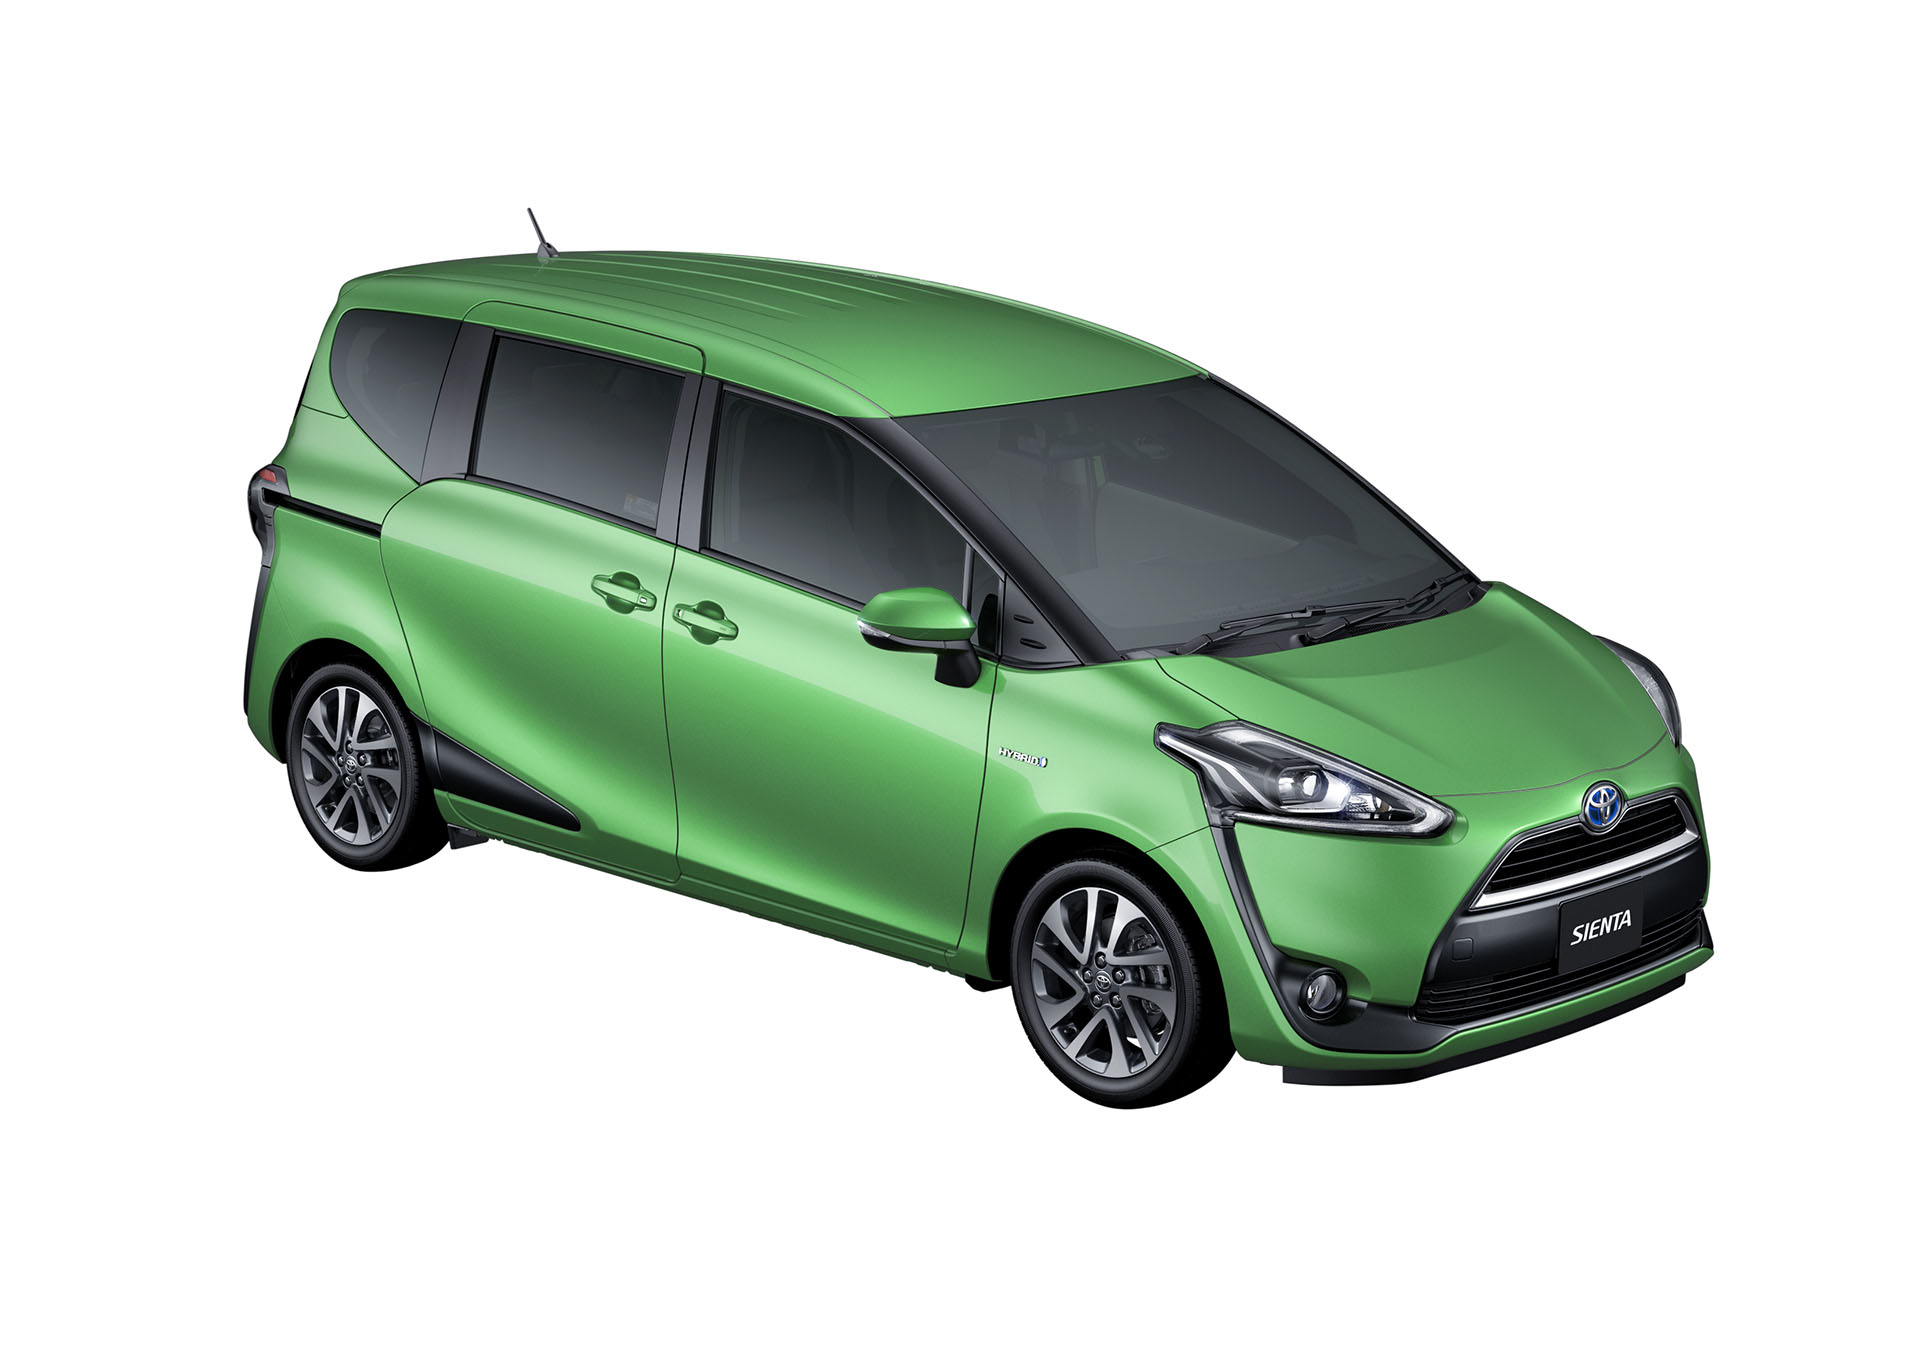 2016 Toyota Sienta front three quarter in green unveiled in Japan